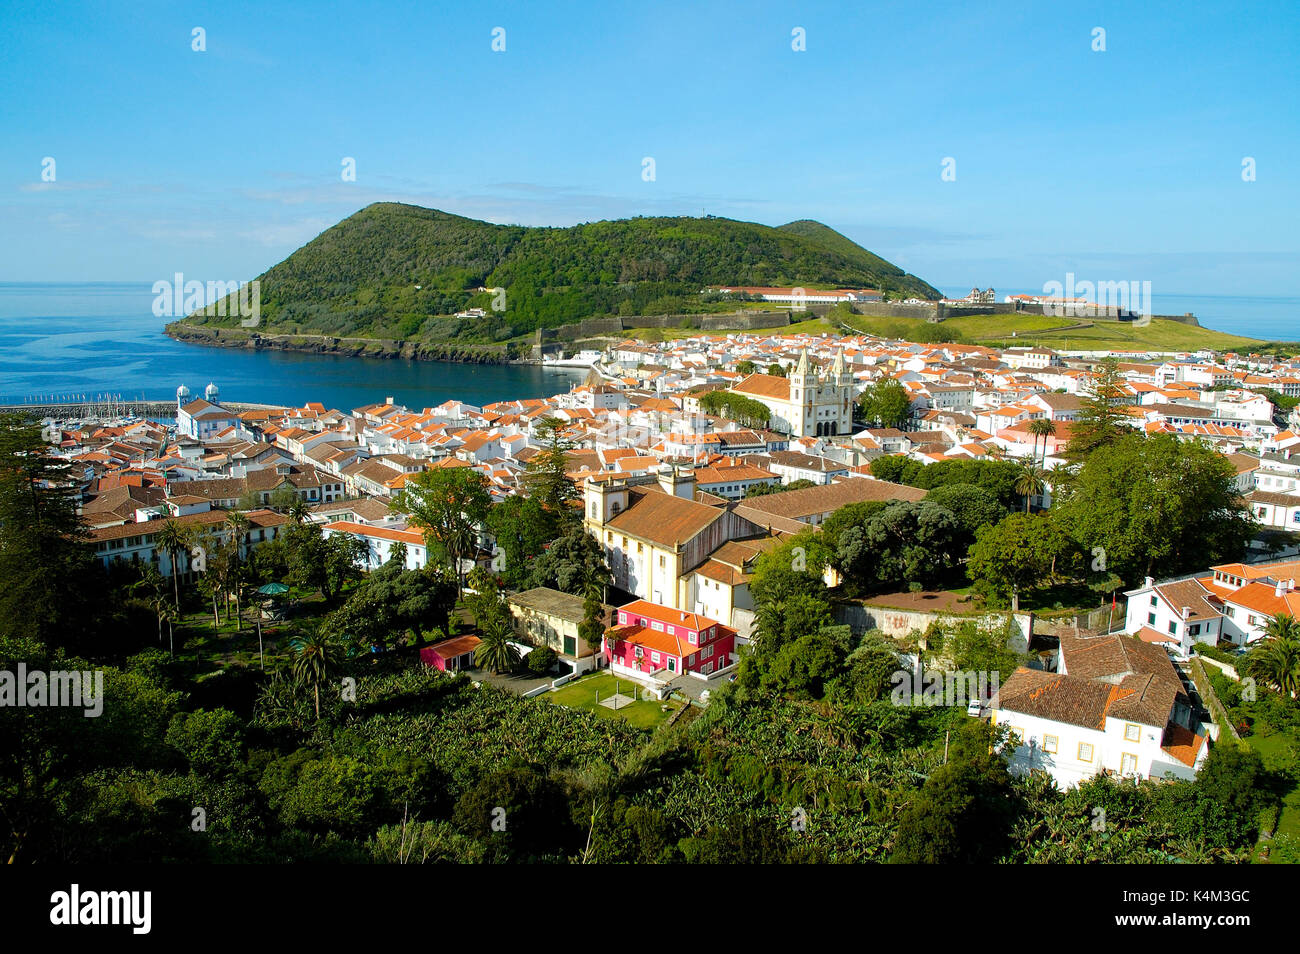 angra do heroismo christian dating site Terceira azores trip - what to see & do  we admired the architecture of angra do heroismo's churches,  dating from the late 19th century to the early 20th .